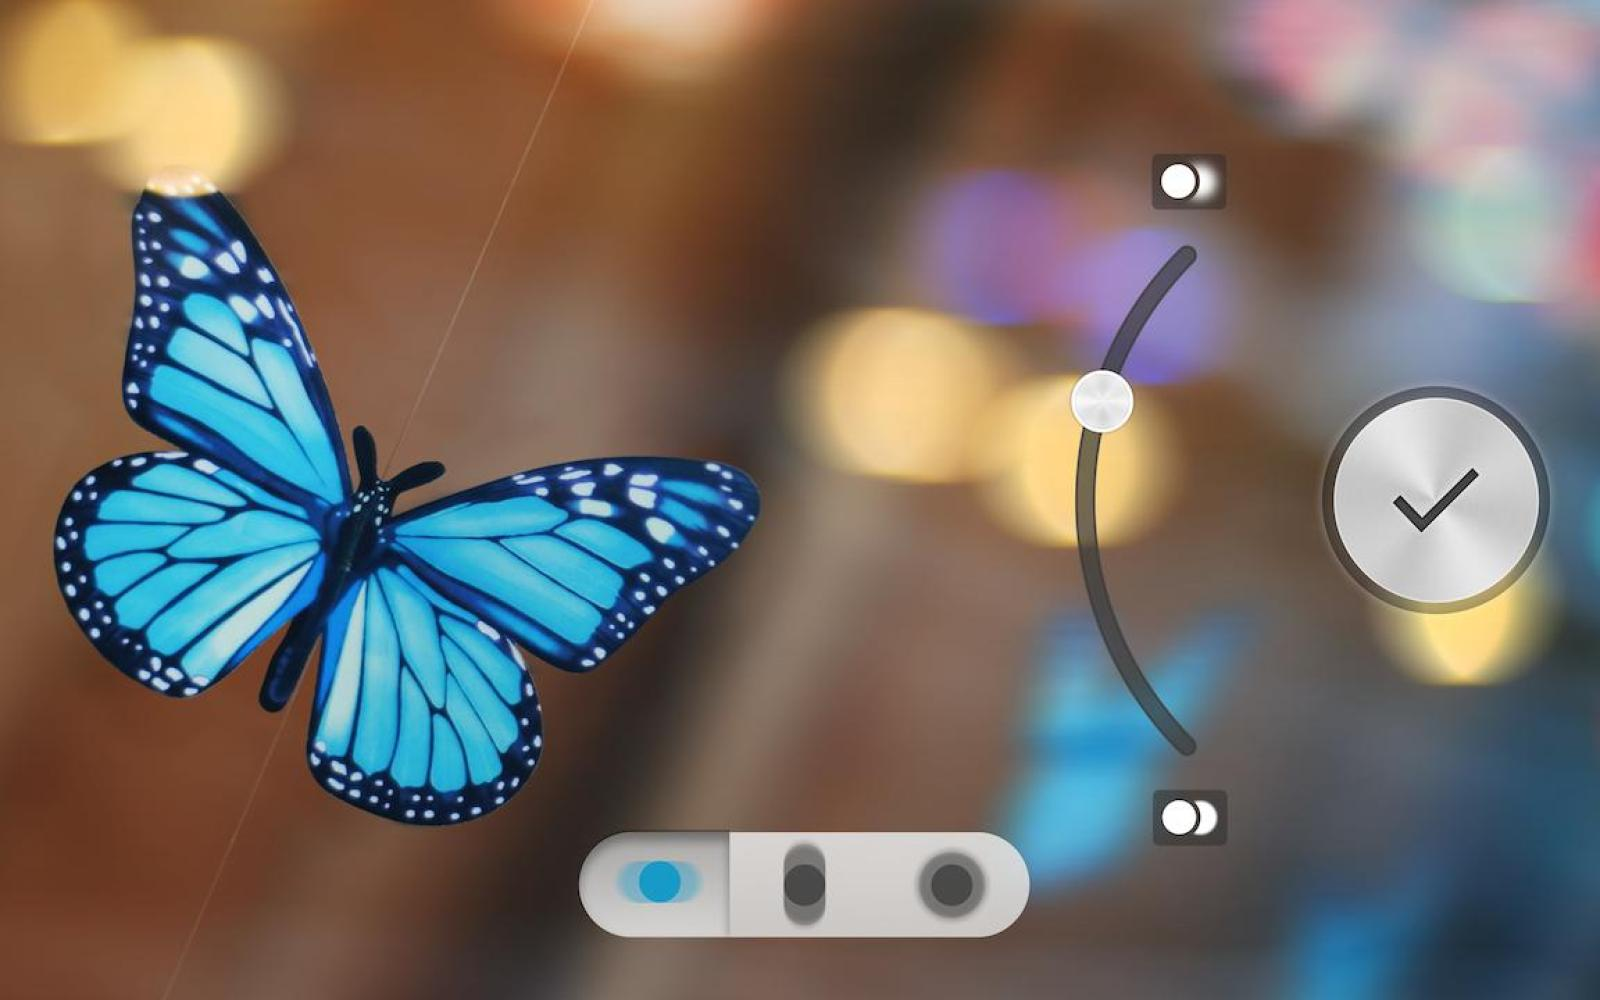 Sony releases 'Background defocus' camera app to Play Store